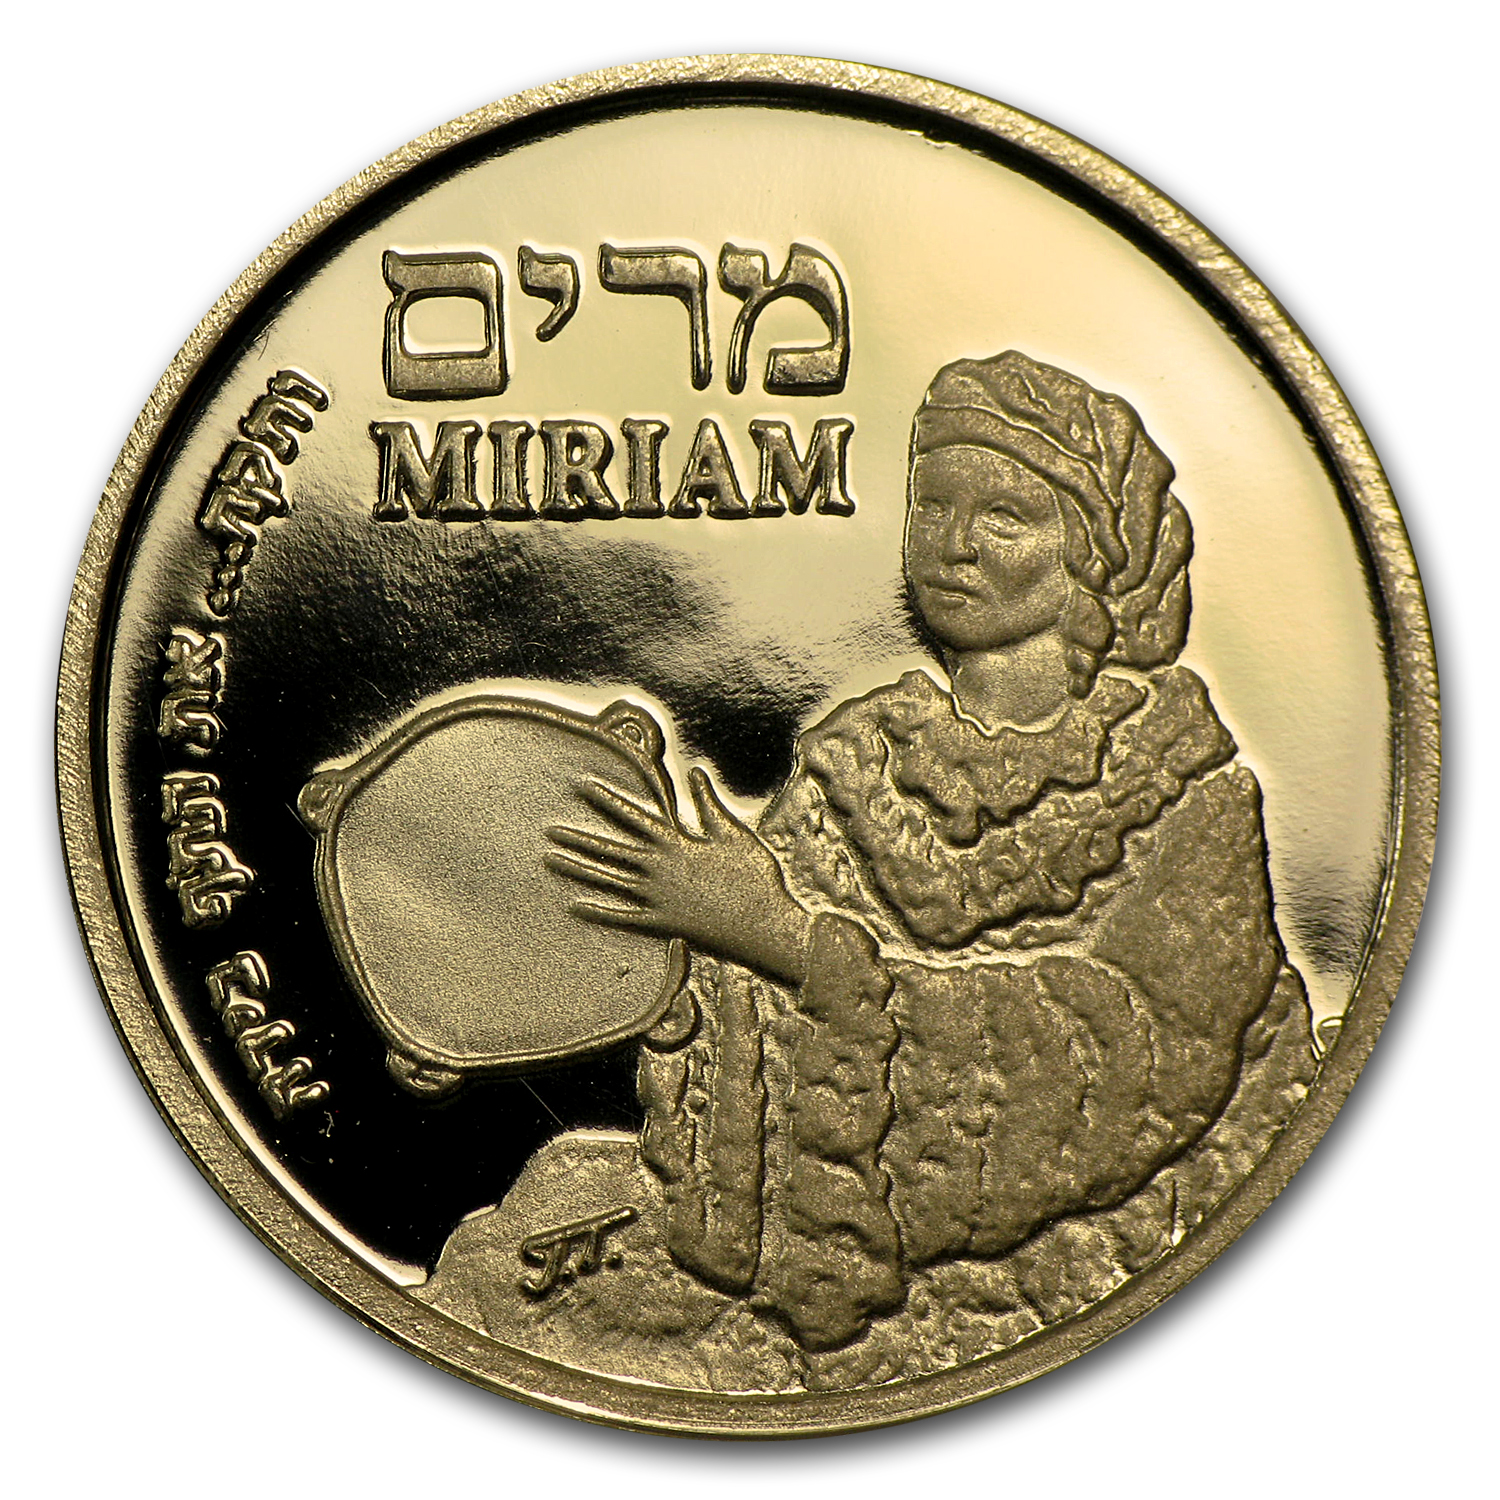 2010 Israel Proof Gold Medal Miriam AGW (.188 oz)